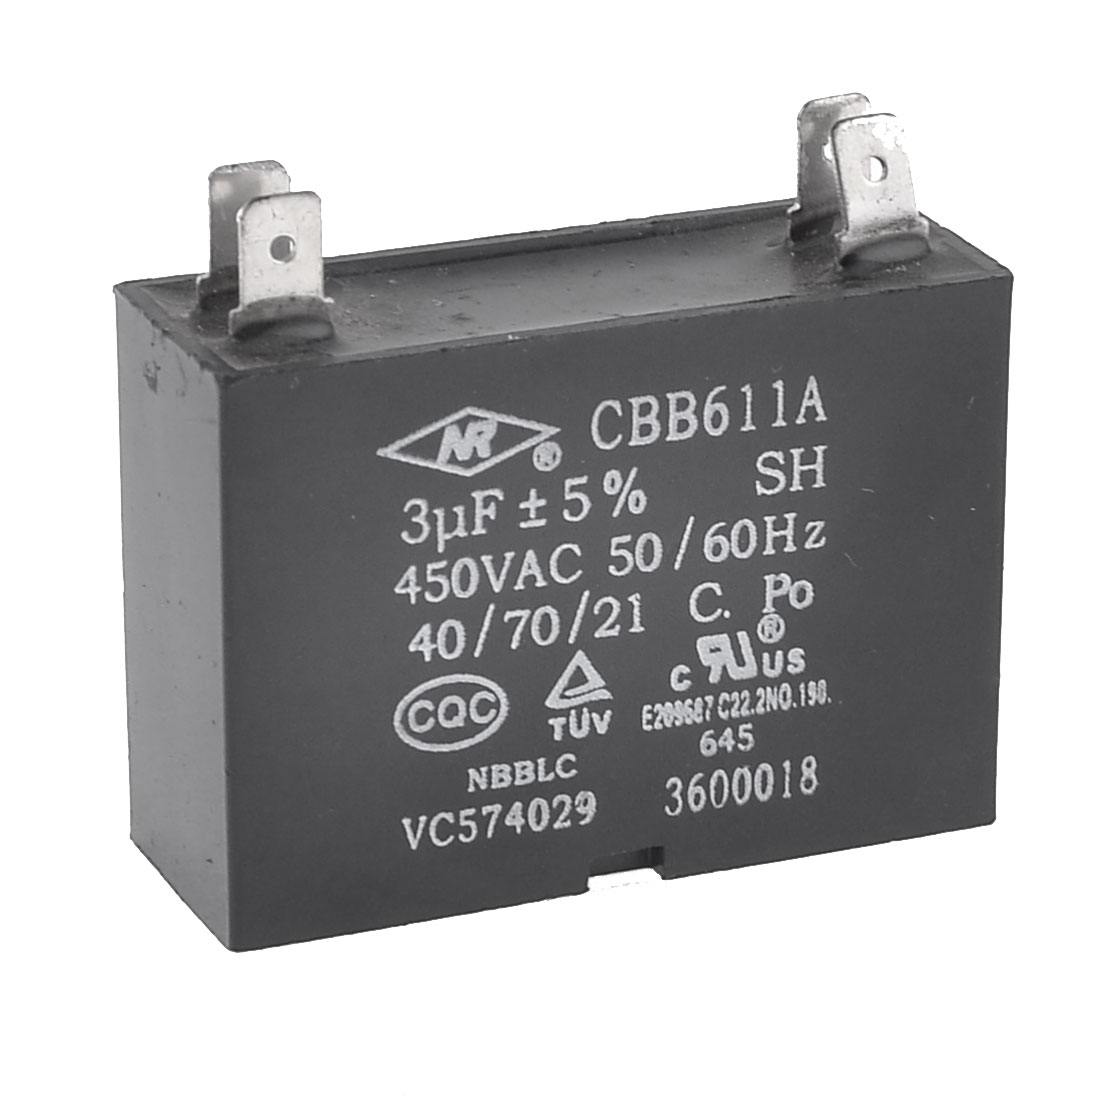 AC 450V 3uF 4 Pins Air Conditioner Motor Capacitor Black